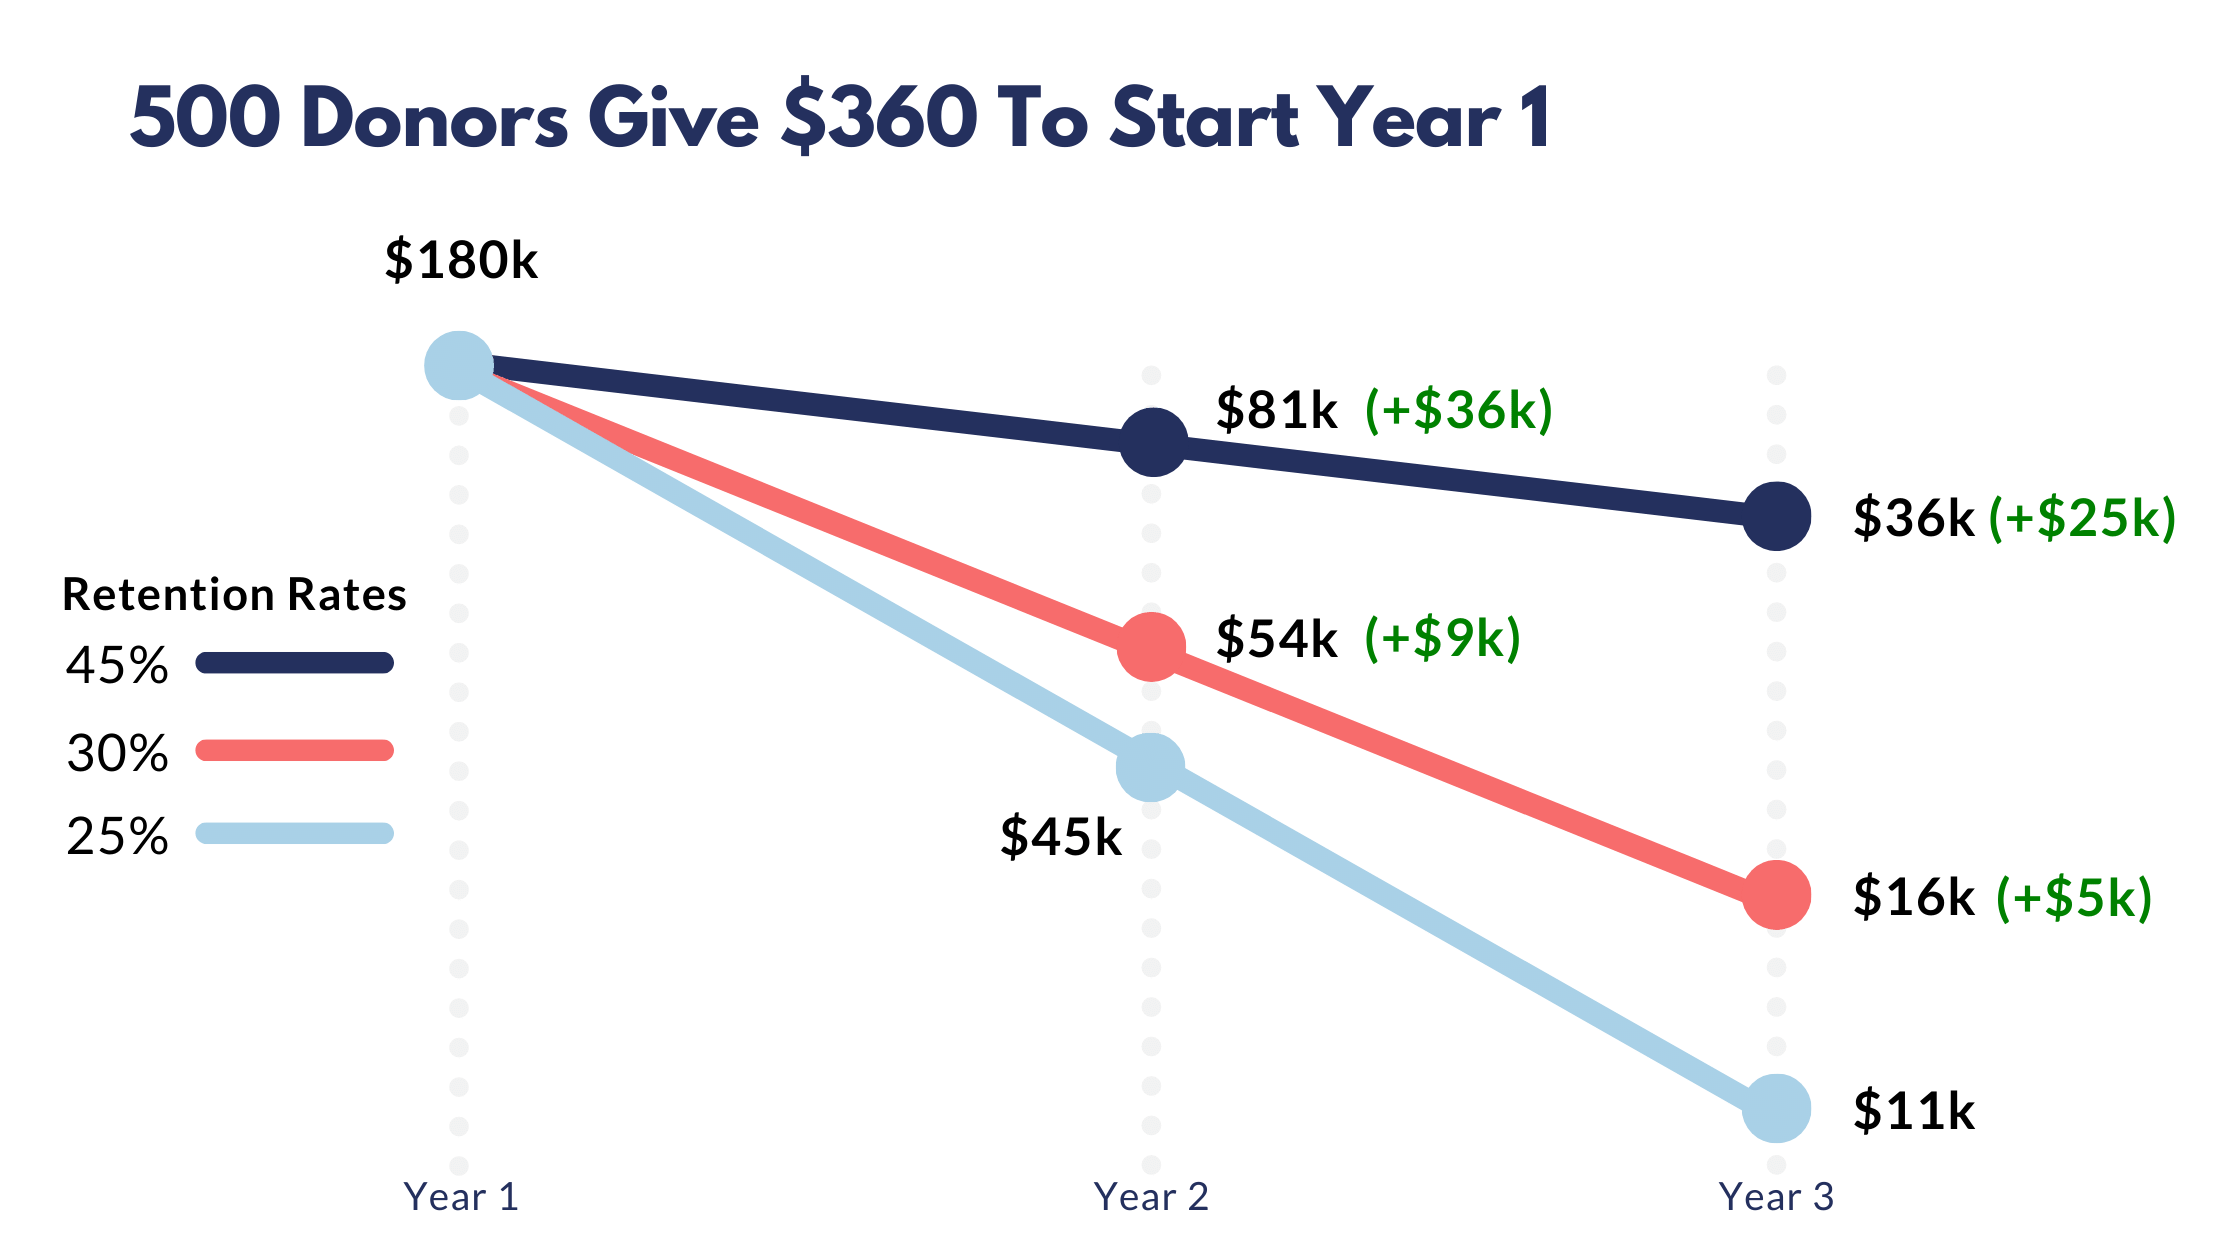 500 donors give $360 to start year chart showing an increase in retention rates can save us big